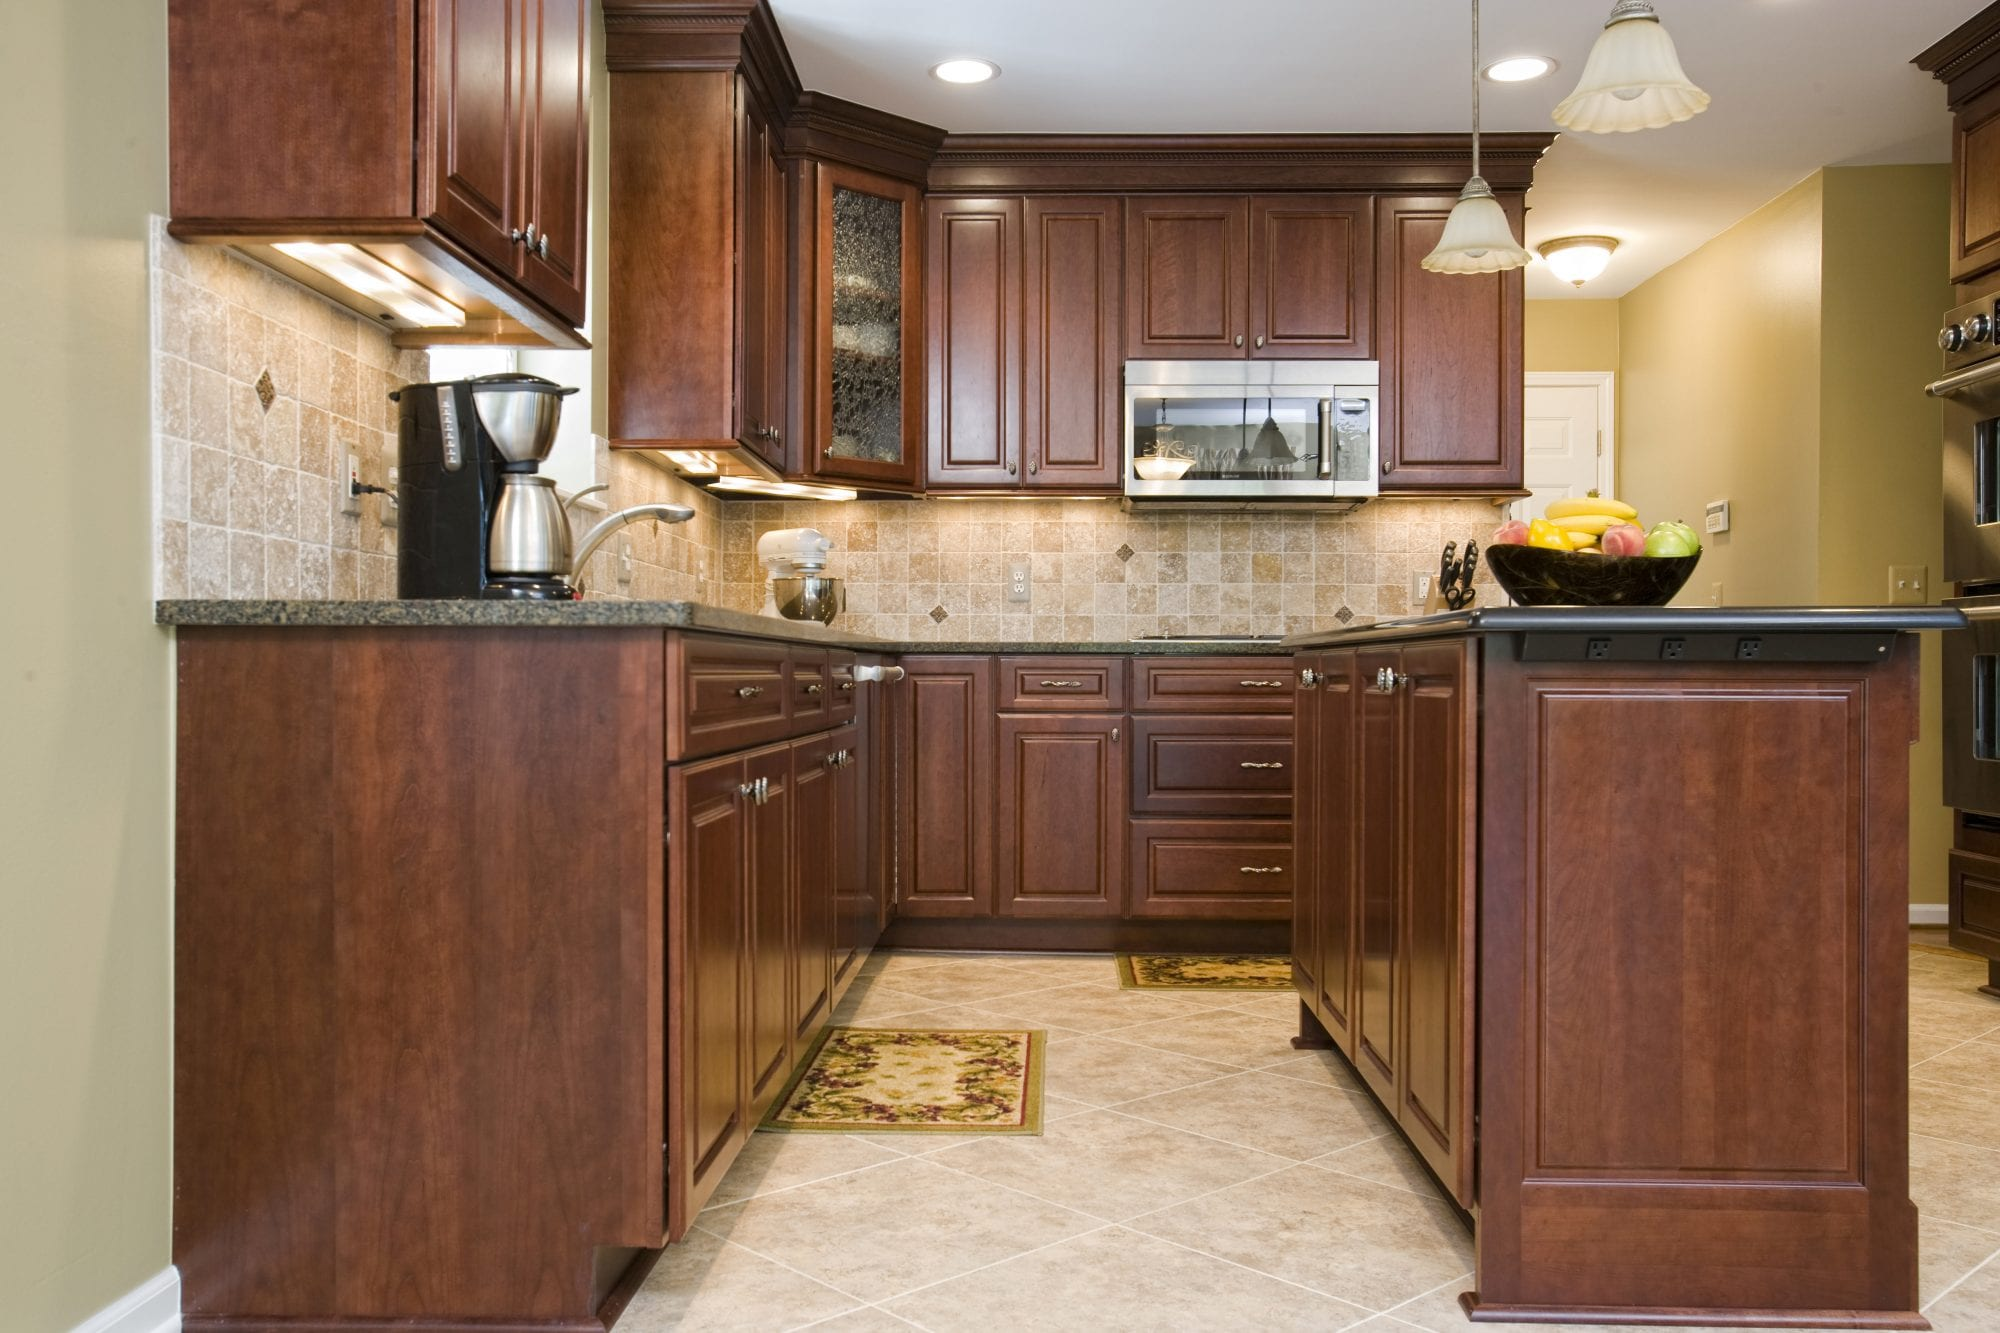 ... Tranditional Kitchen Remodeling Withy Ceramic Floor And Granite Counter  Tops